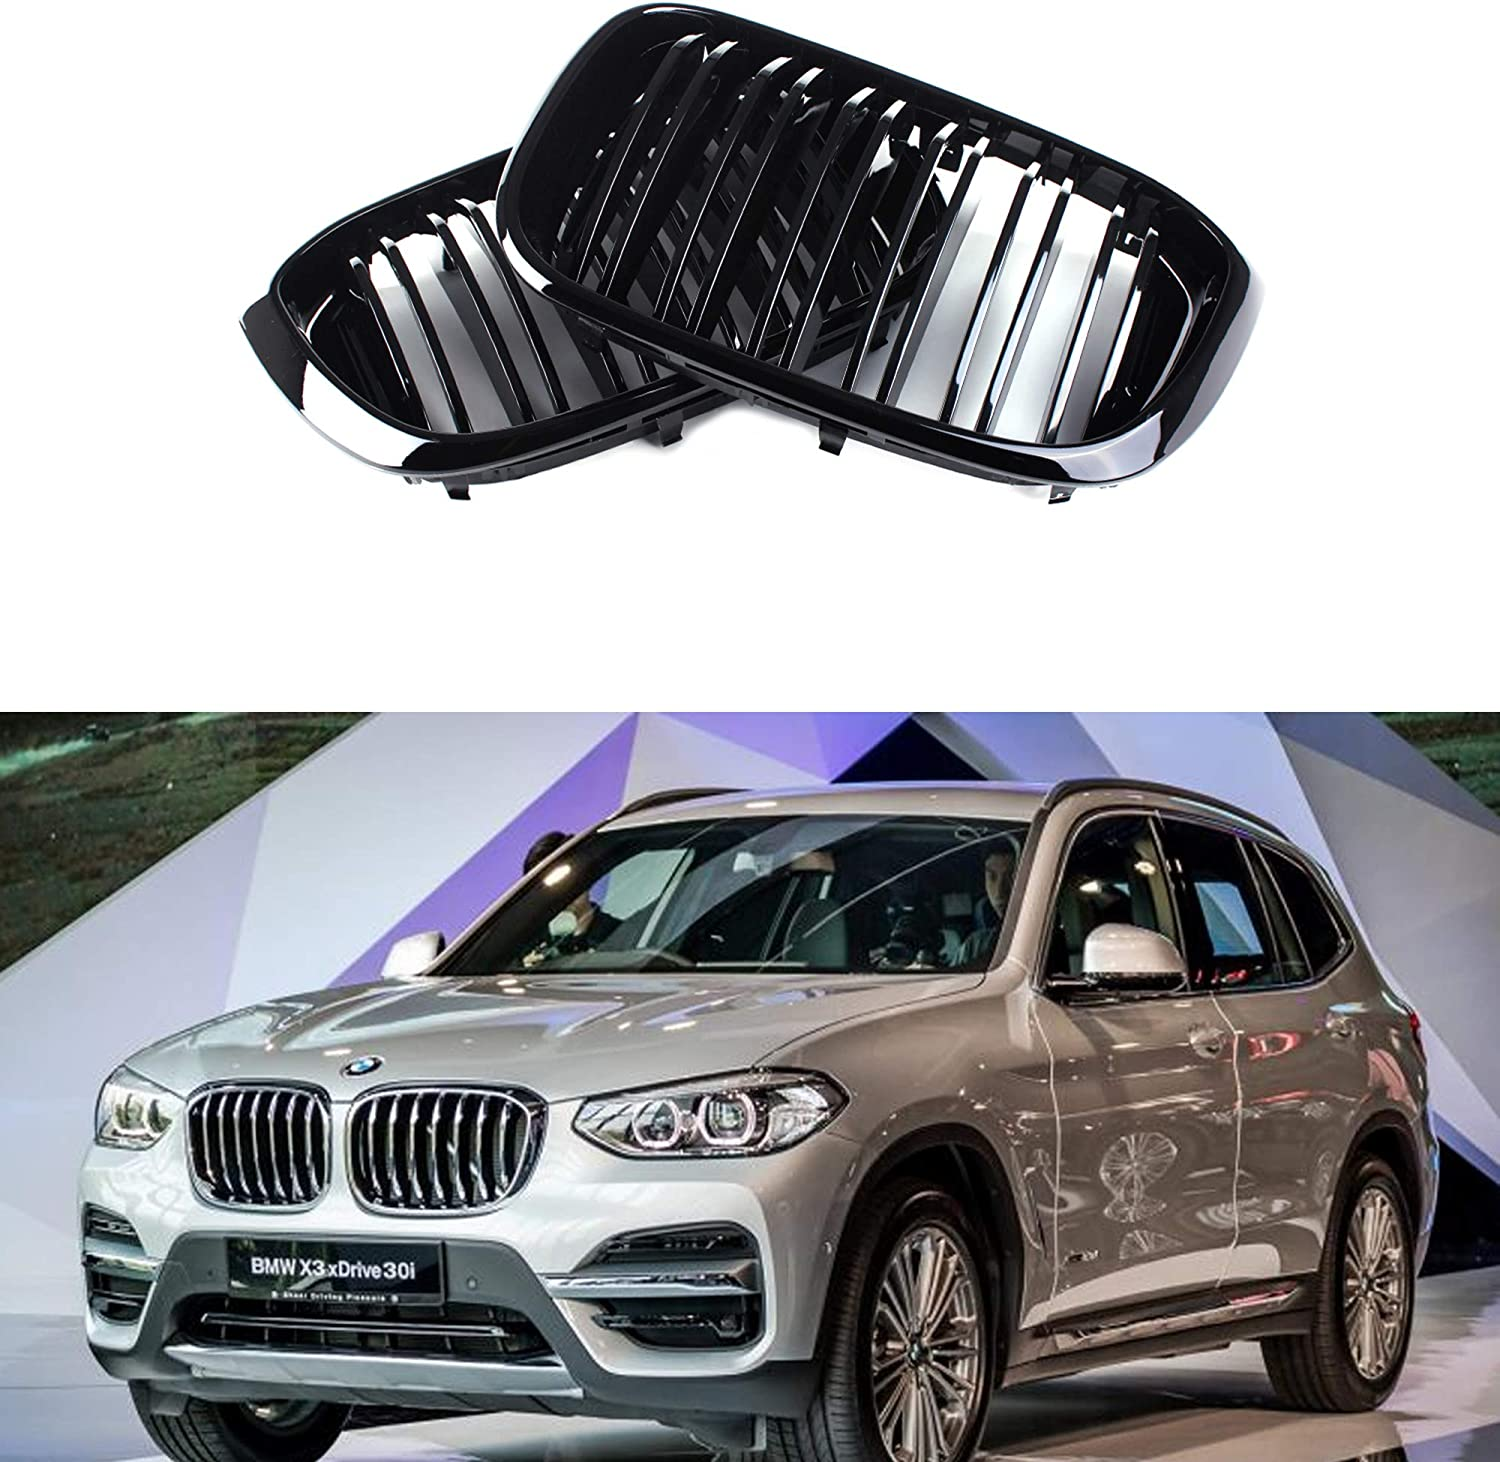 Shiny shop 5 popular Black Dual Line Front Grille Grill 20 BMW For G01 G02 X3X4